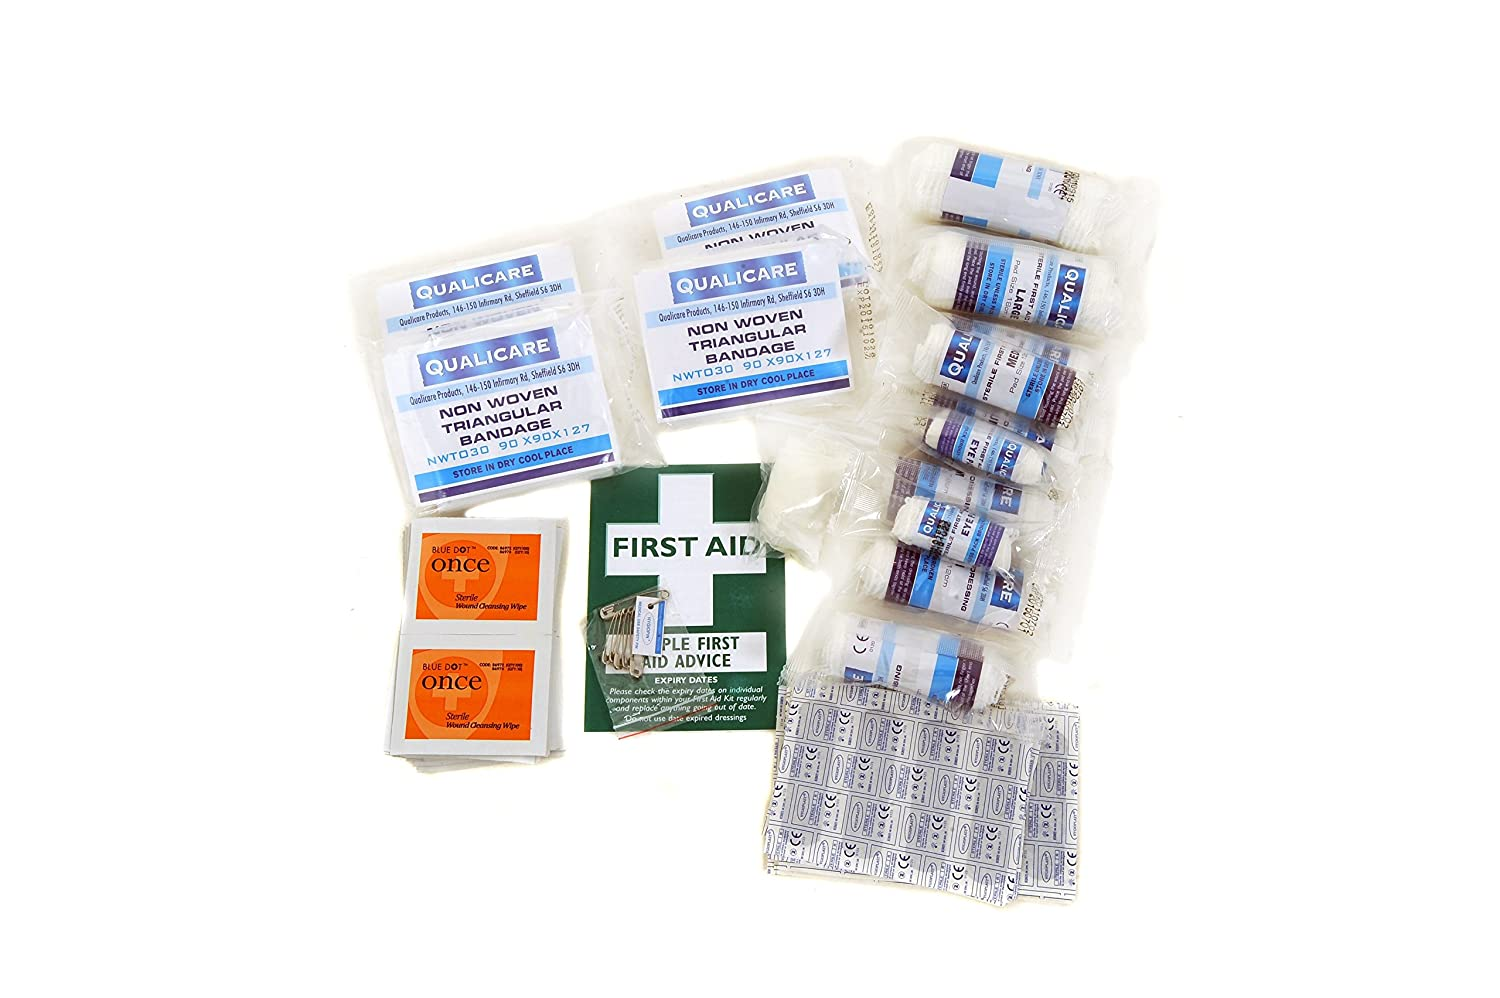 QF1210R Qualicare First Aid Catering Kit HSE 1-10 person Refill Nightingale Nursing Supplies